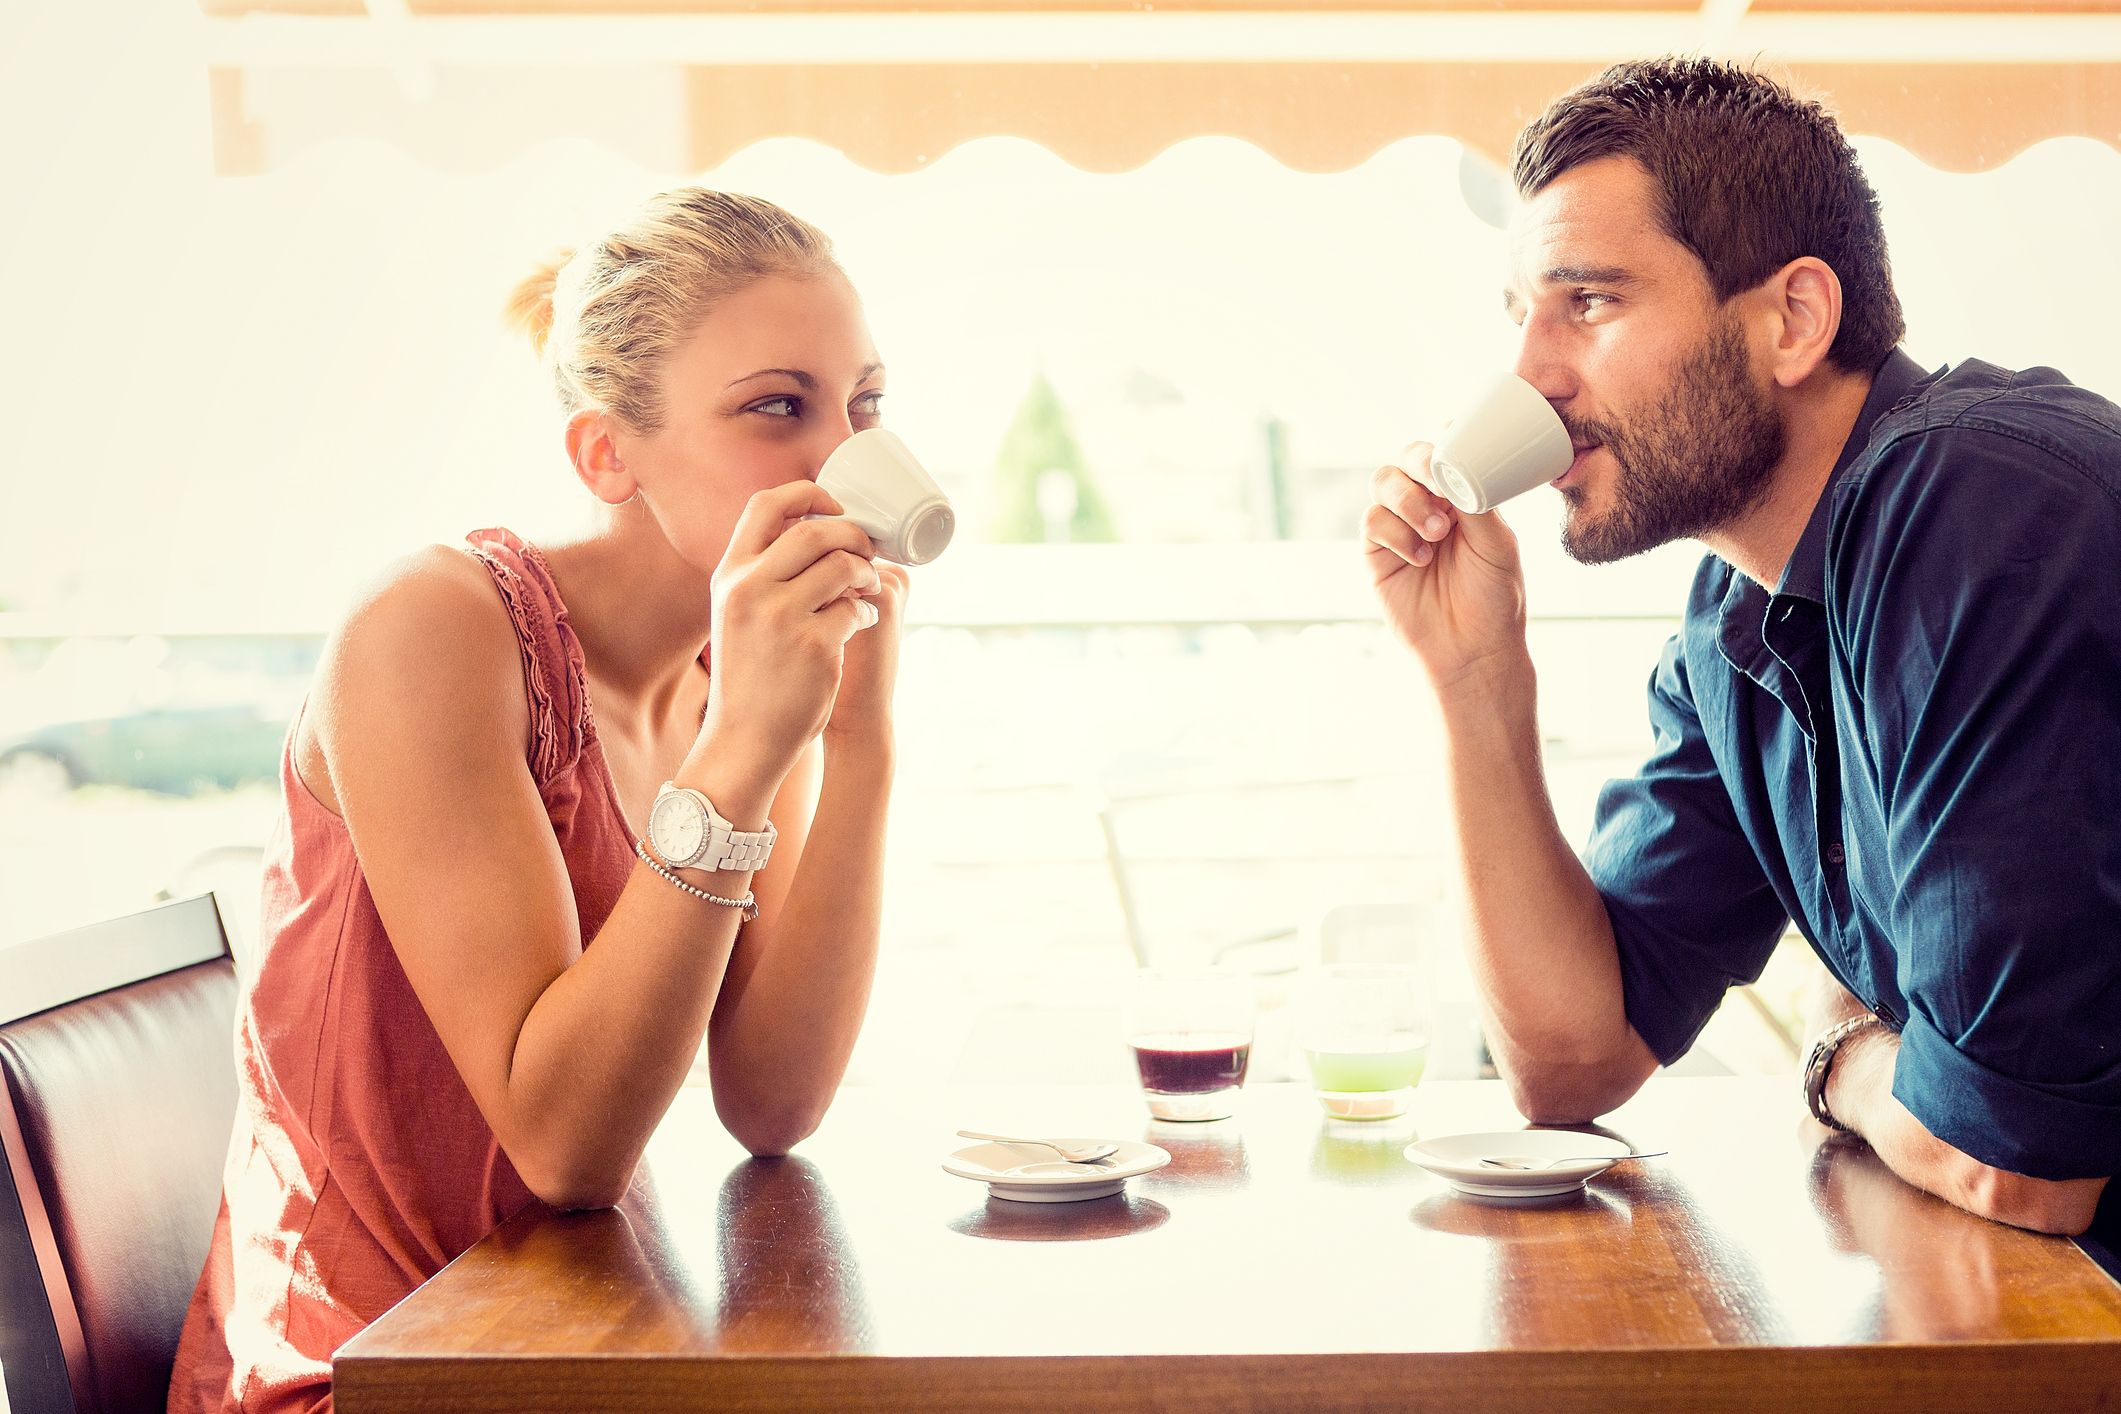 Best Questions to Ask on a Date - Good Conversation Starters